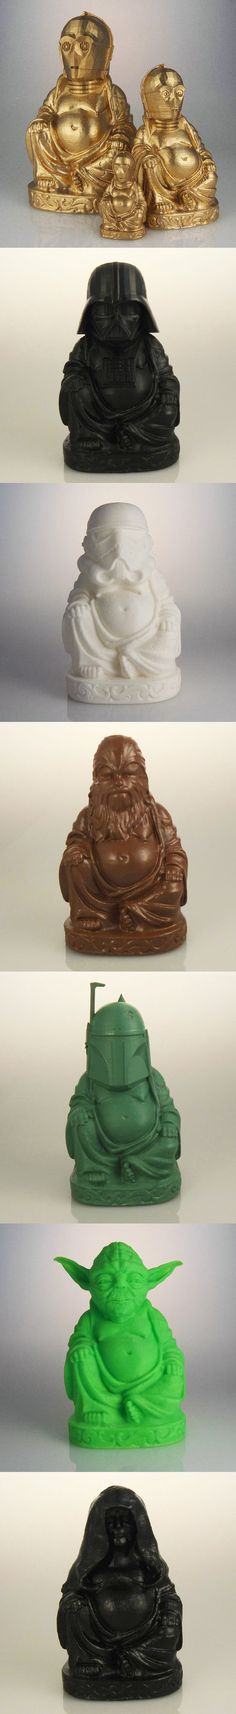 "3D Printed Geeky Laughing Buddhas: What is the Sound of One Han Shooting? Tap into the force of Luck with Chris ""muckychris"" Milnes' 3D printed geeky Budai statues, which swaps the jelly bellied deity's head with characters from Star Wars"